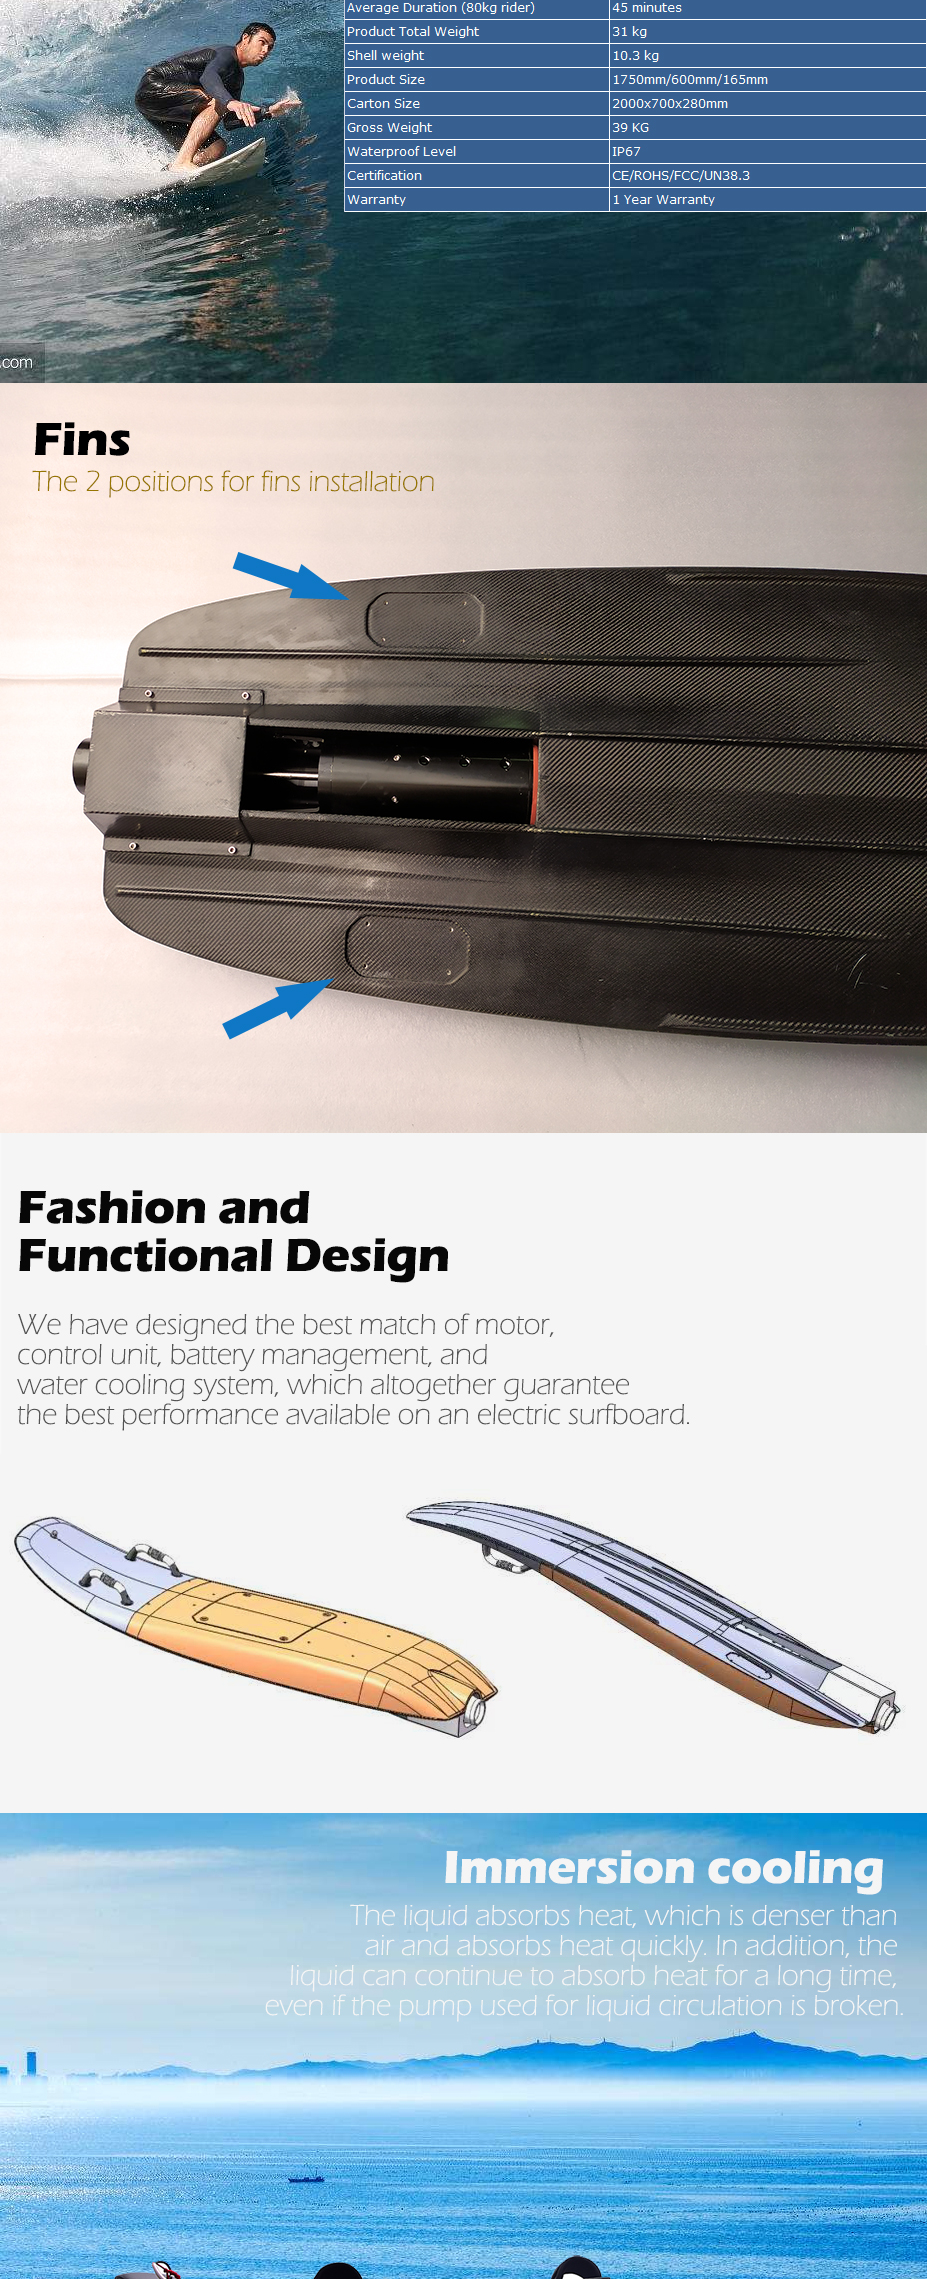 Fast Speed 32 MPH Motor 72V 30Ah 10KW Sea Wake Cheap Electric Power Jet Surf Board Hot Sale in USA Canada